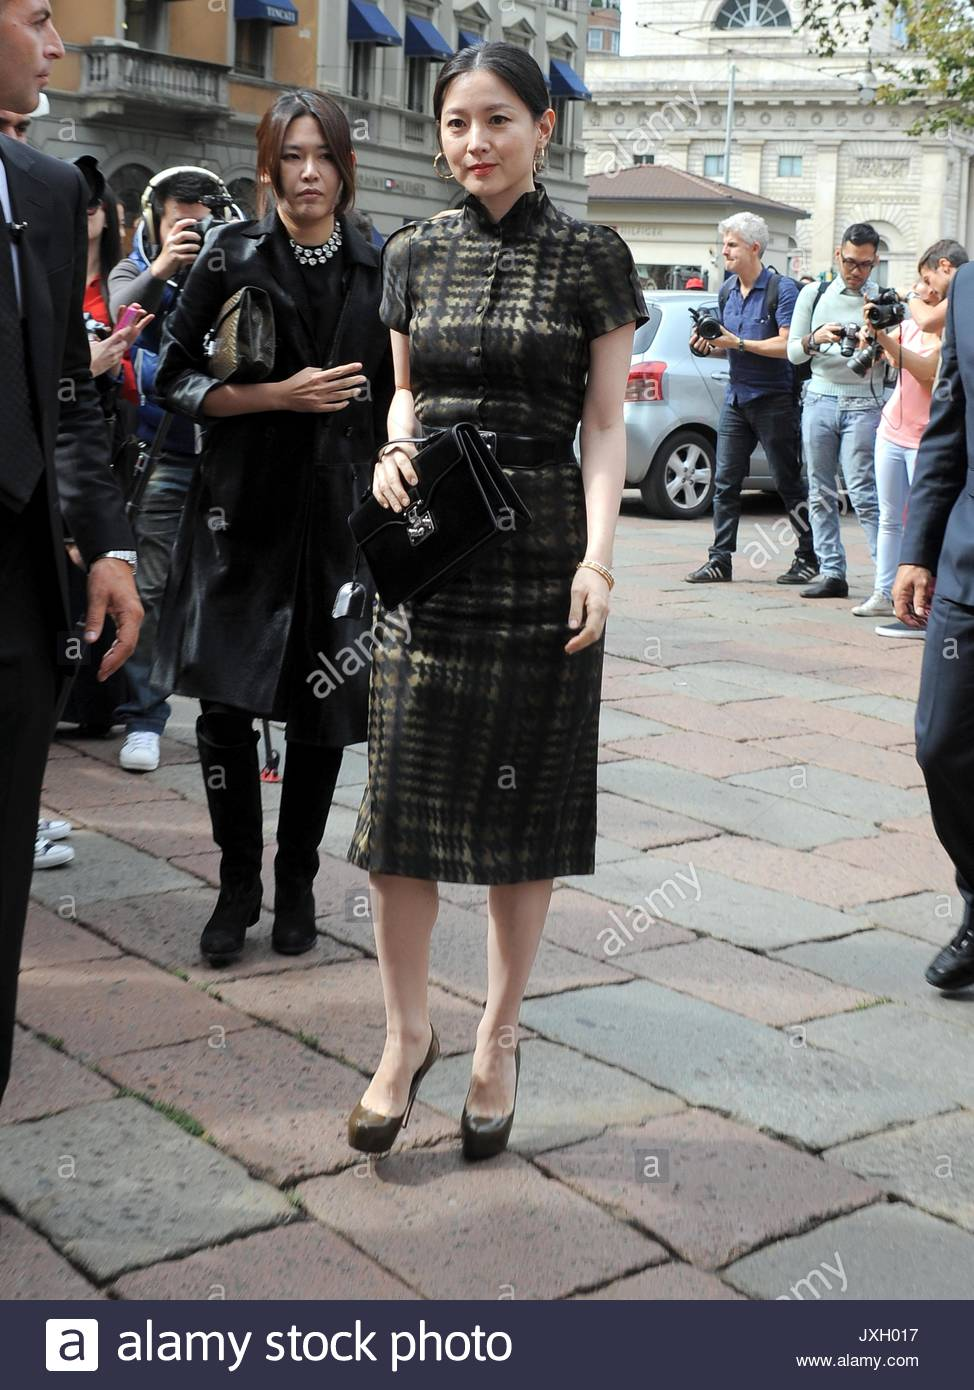 lee young ae arrivals at the gucci show for milan fashion week